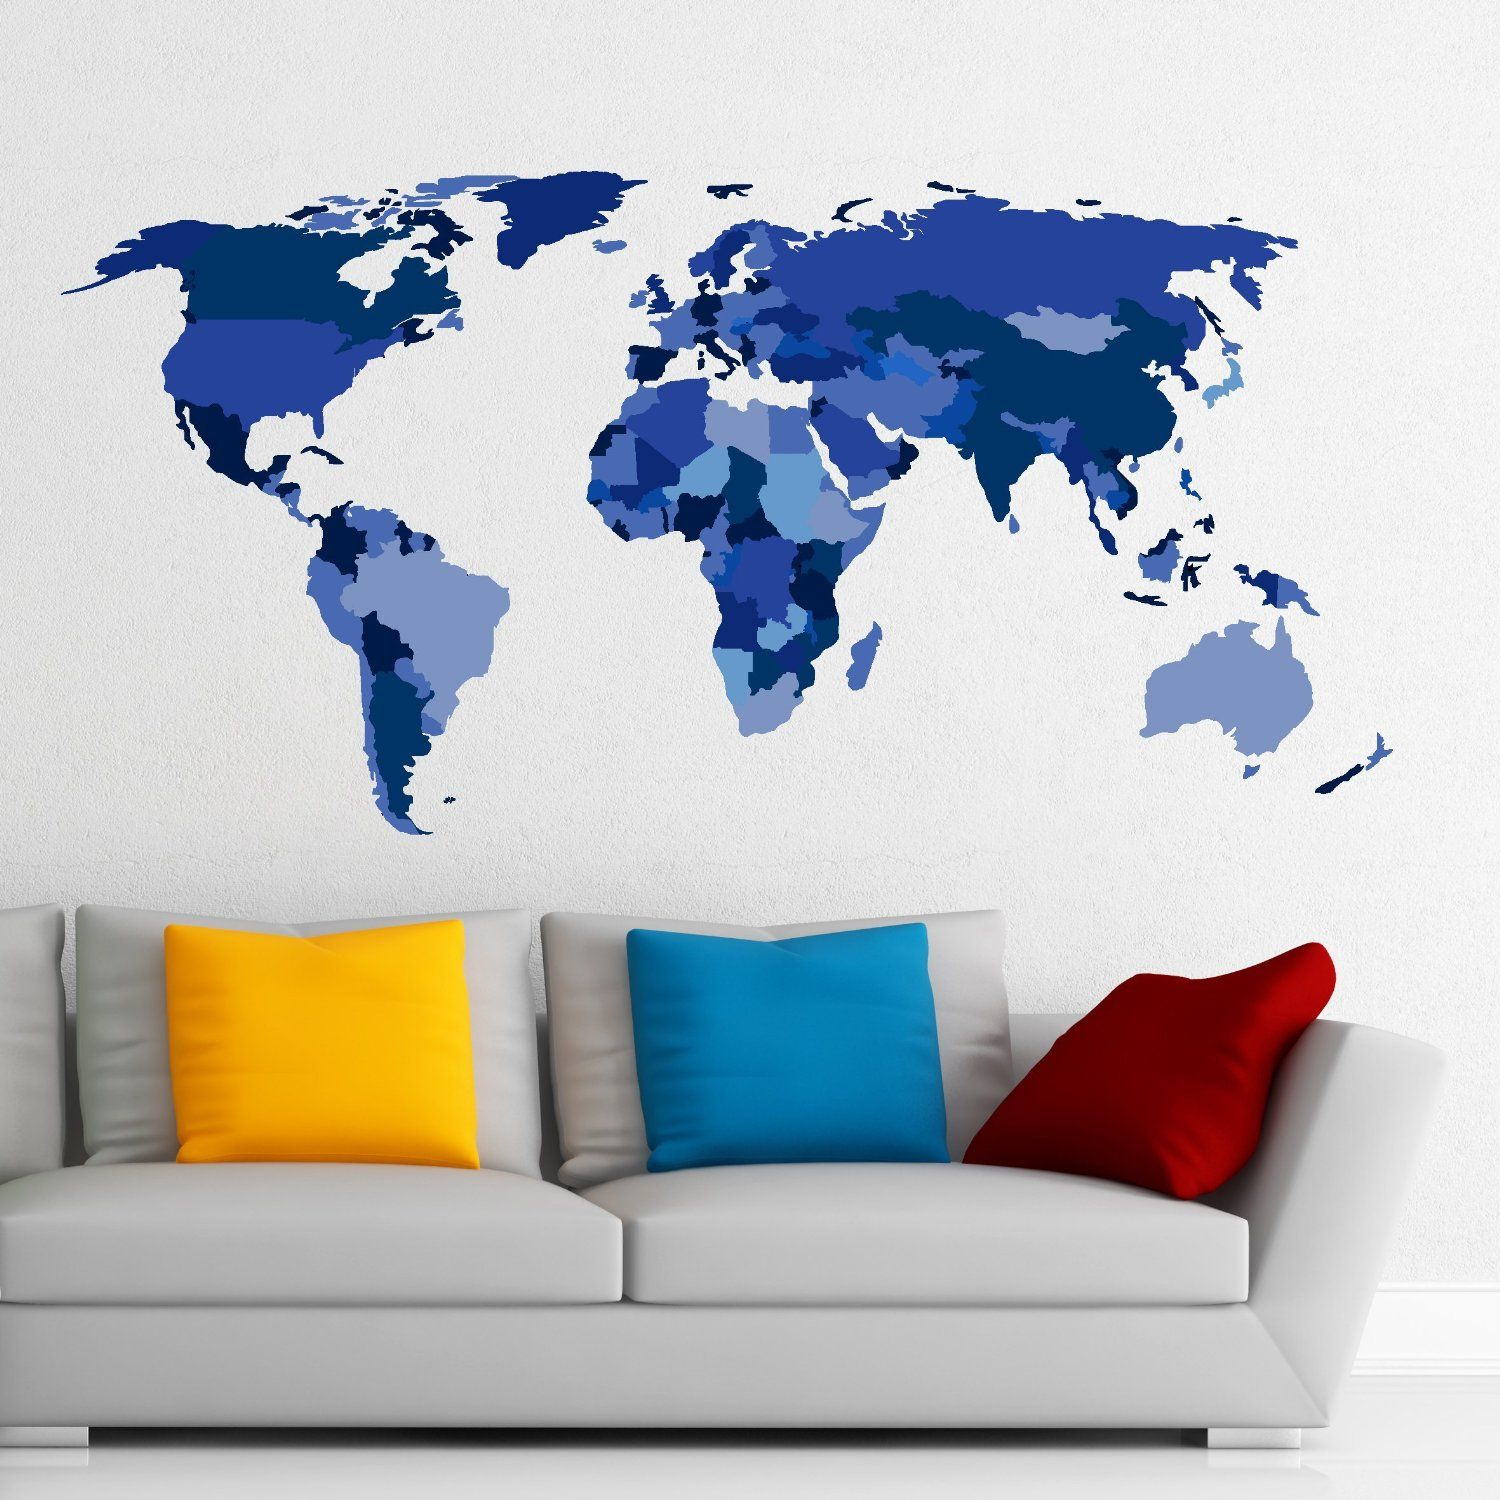 Worksheet. Amazoncom MADE IN THE USA  Wall Decals Map Of The World